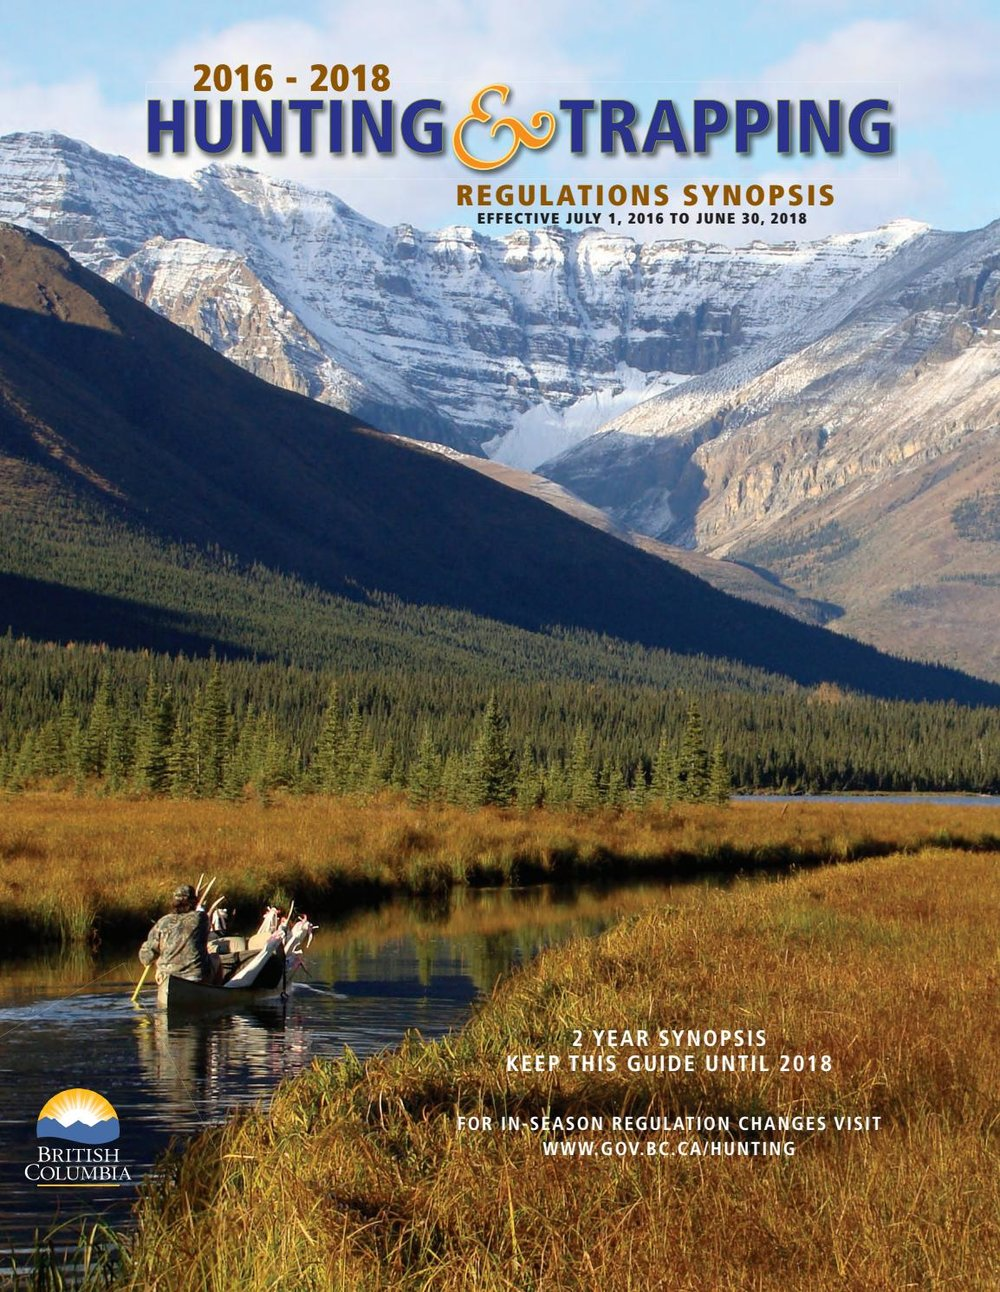 Hunting and Fishing Regulations - Click or tap here to see the online guidebook!